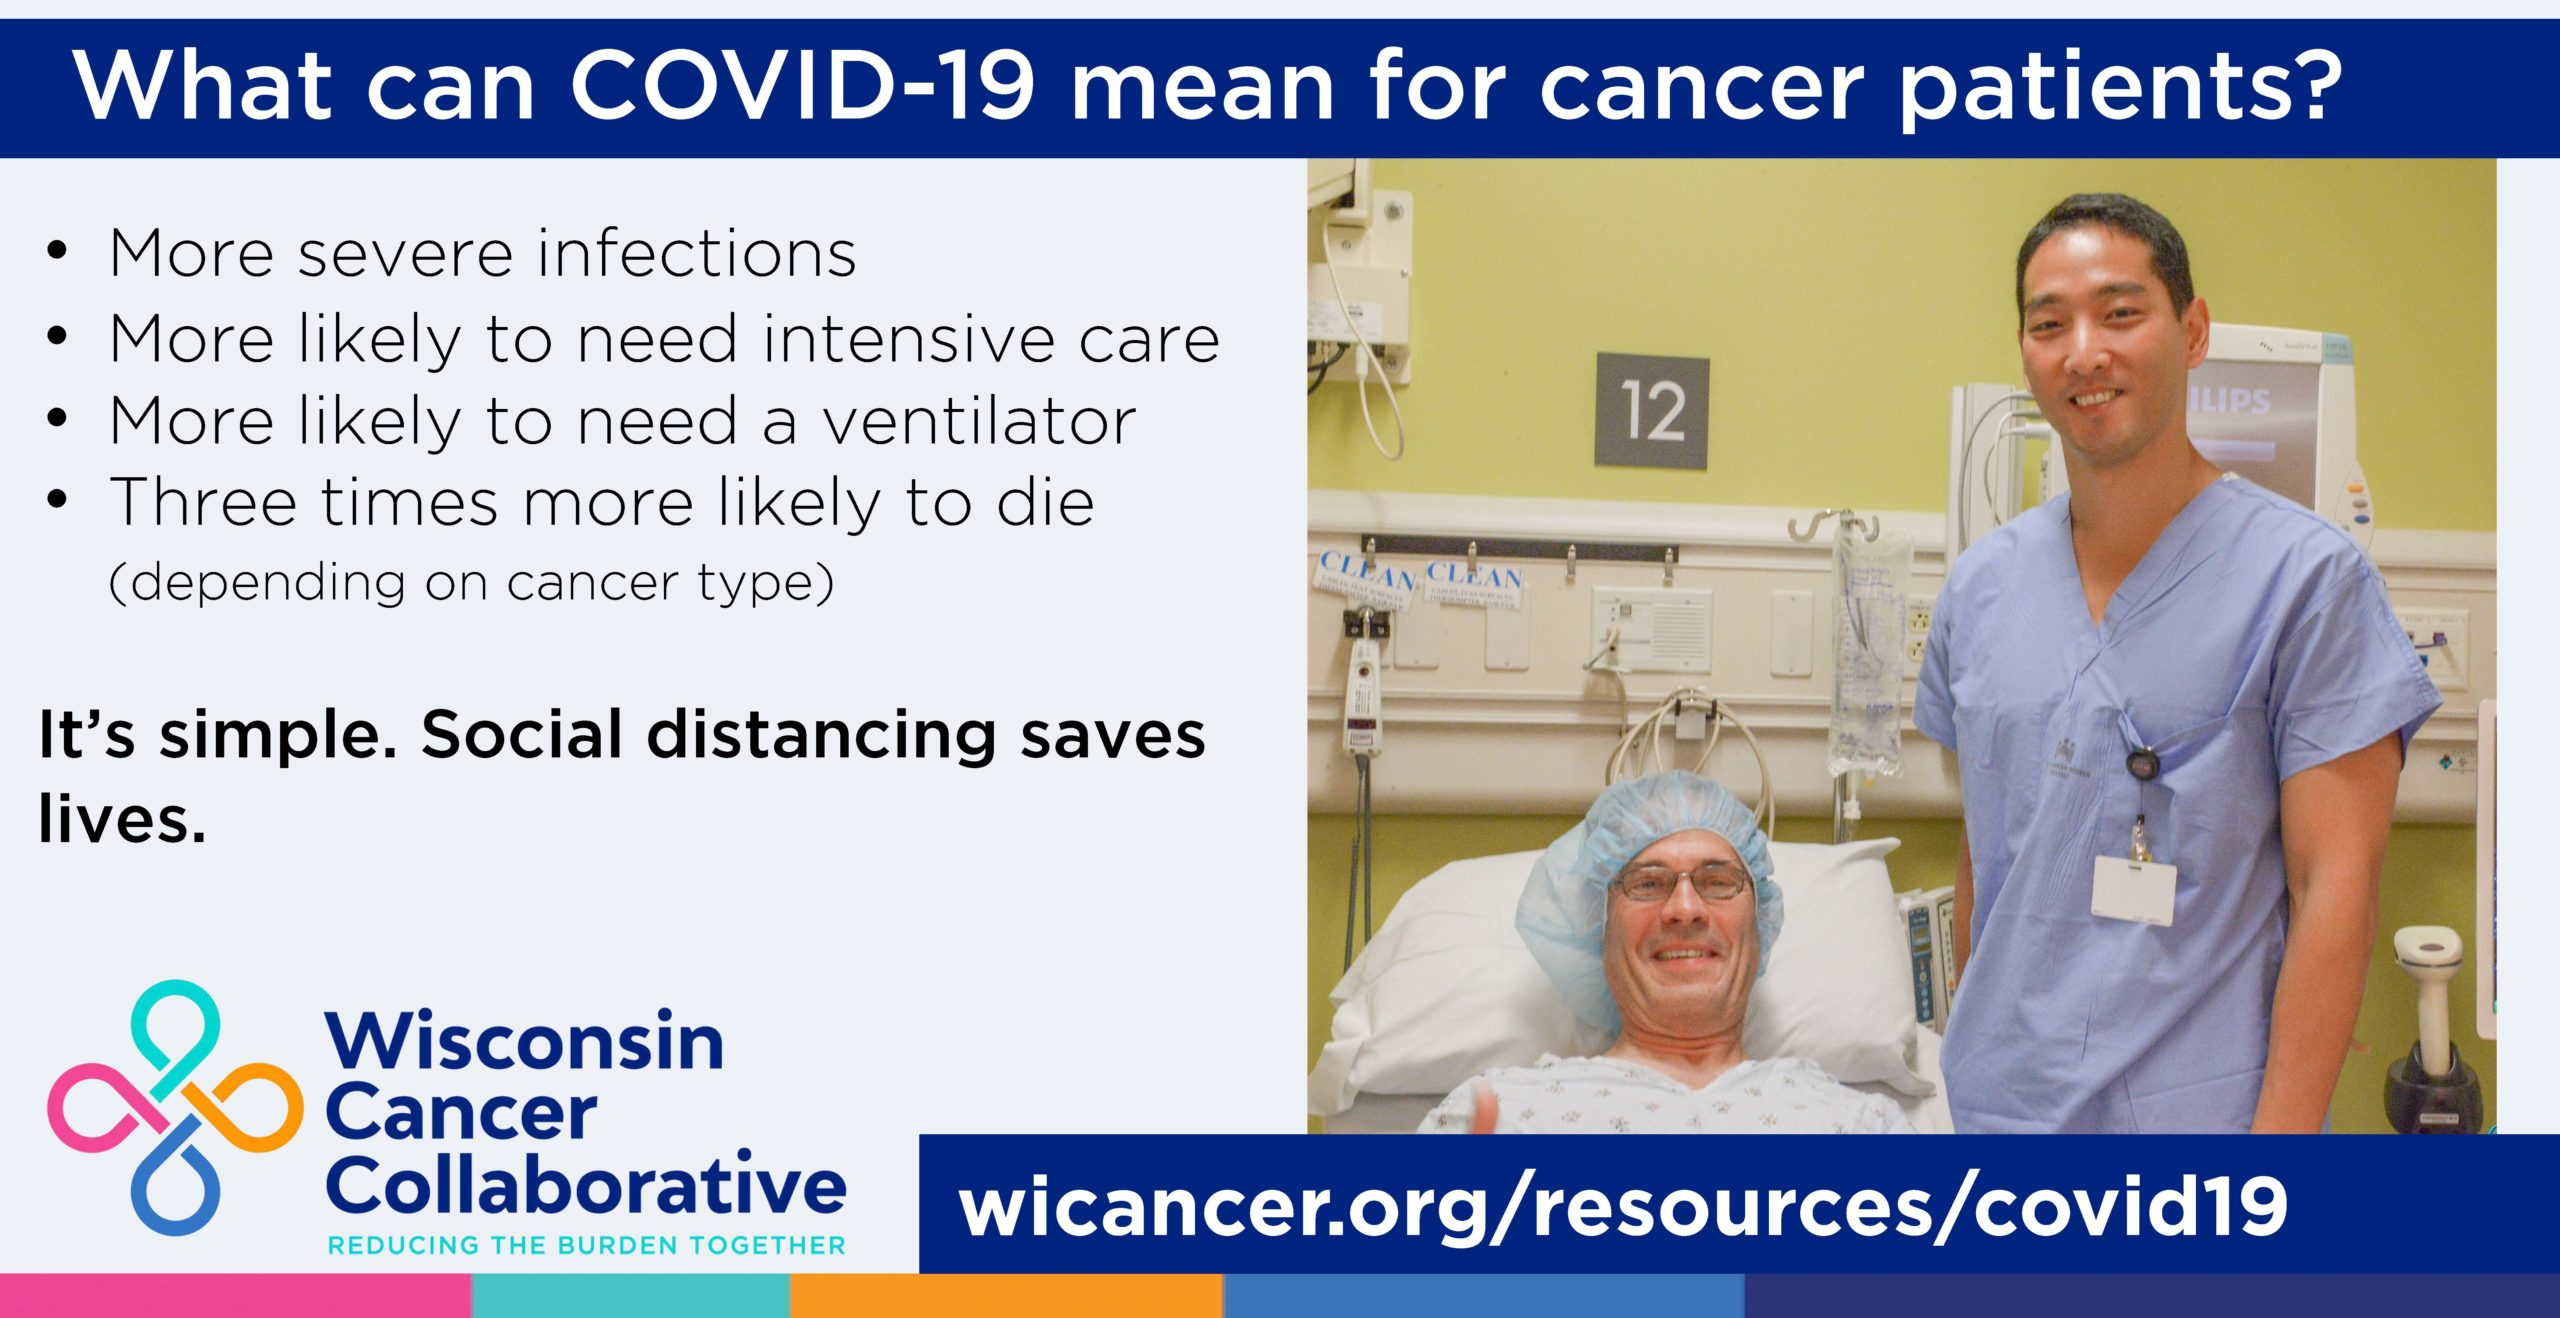 What can COVID mean for cancer patients